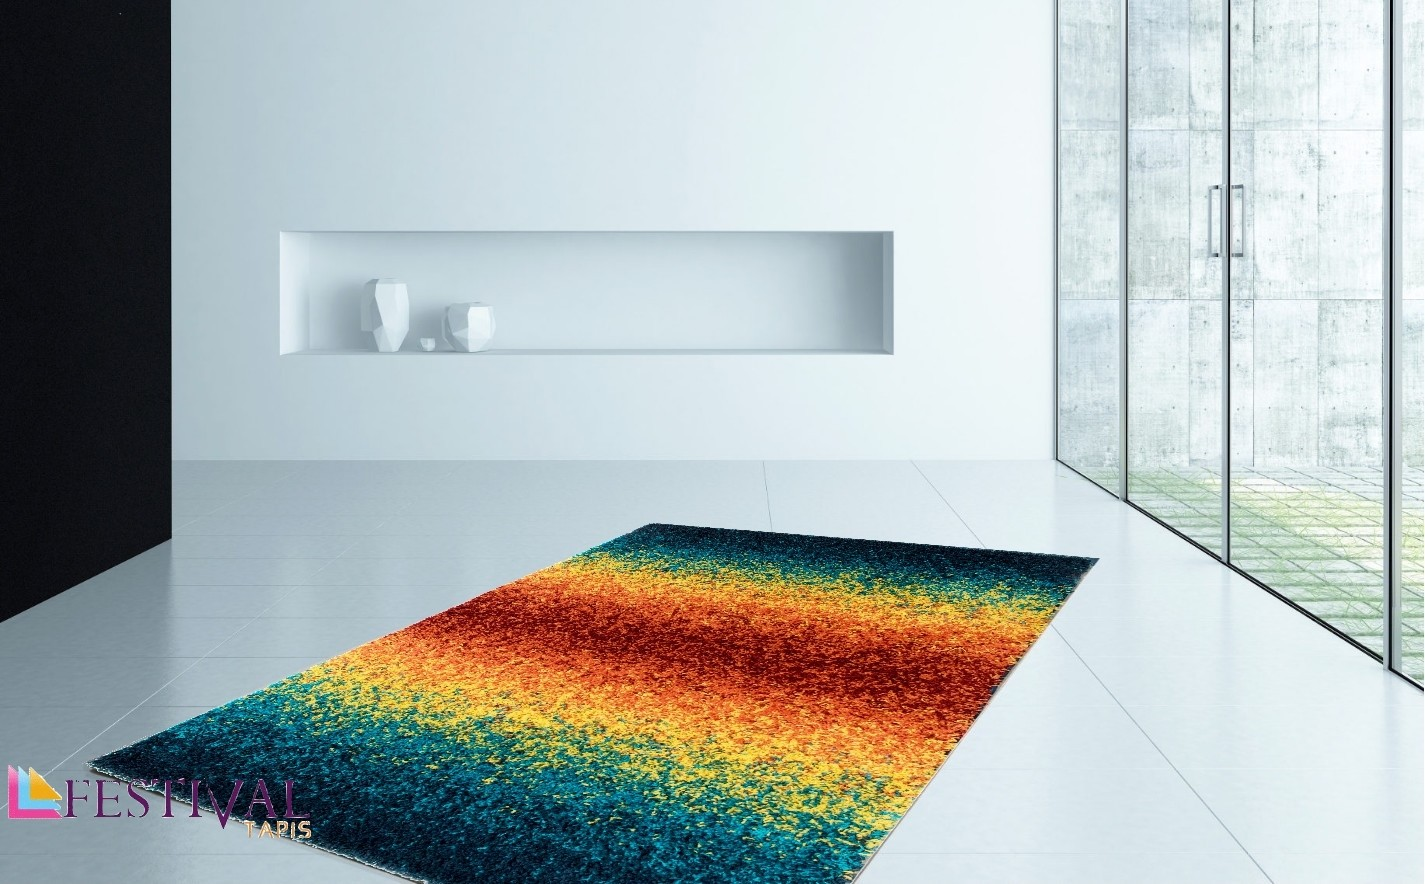 tapis rayures multicolores tapis boules multicolores tapis salon multicolore tapis laine multicolore - Tapis Multicolore